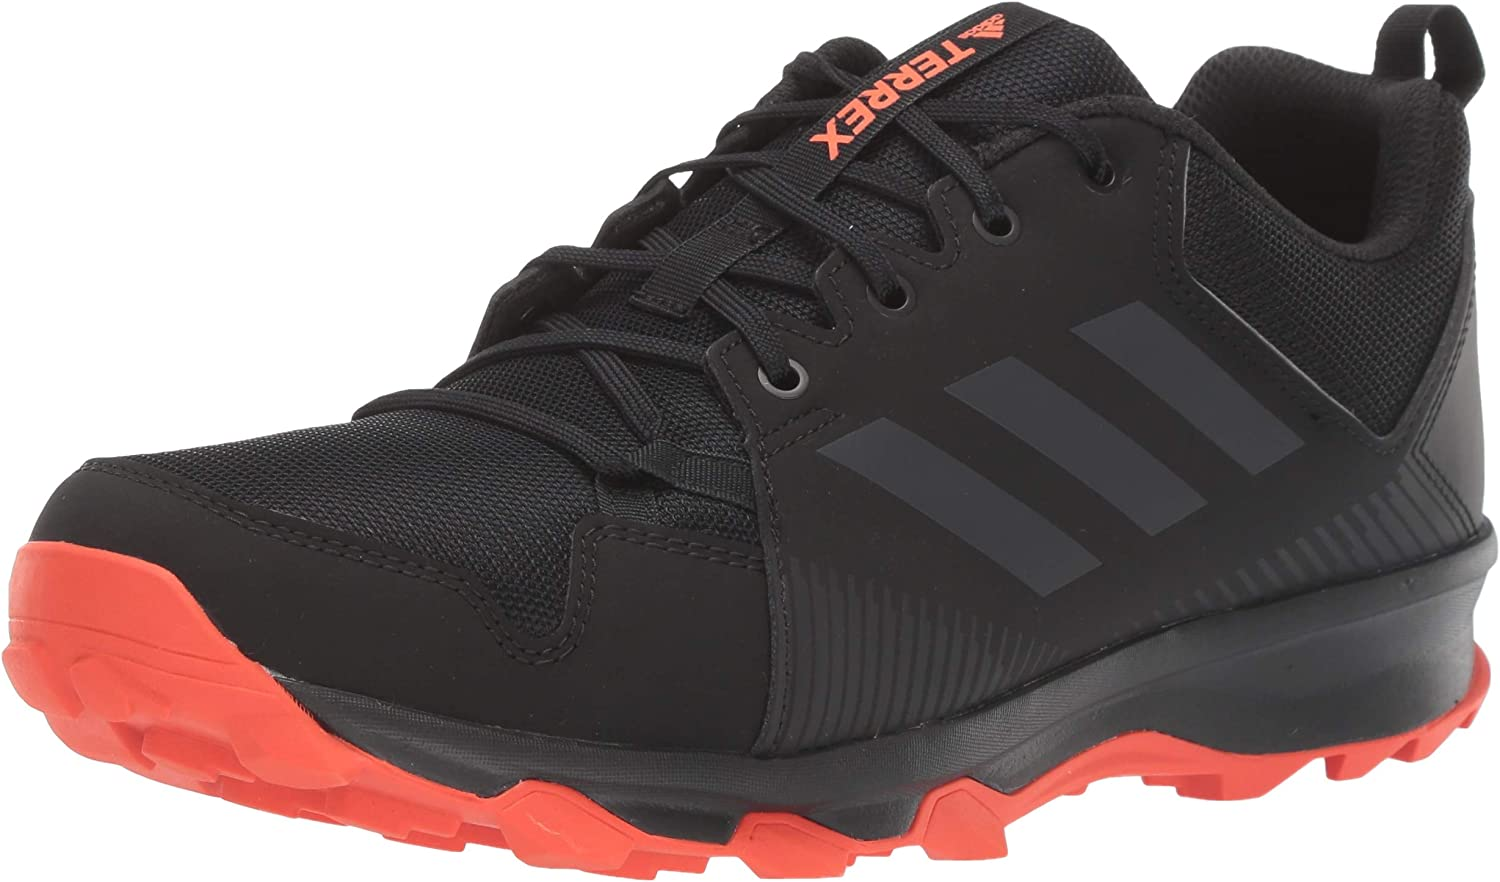 adidas outdoor Men s Terrex Tracerocker Trail Running Shoe, Black Carbon Active Orange, 12.5 D US